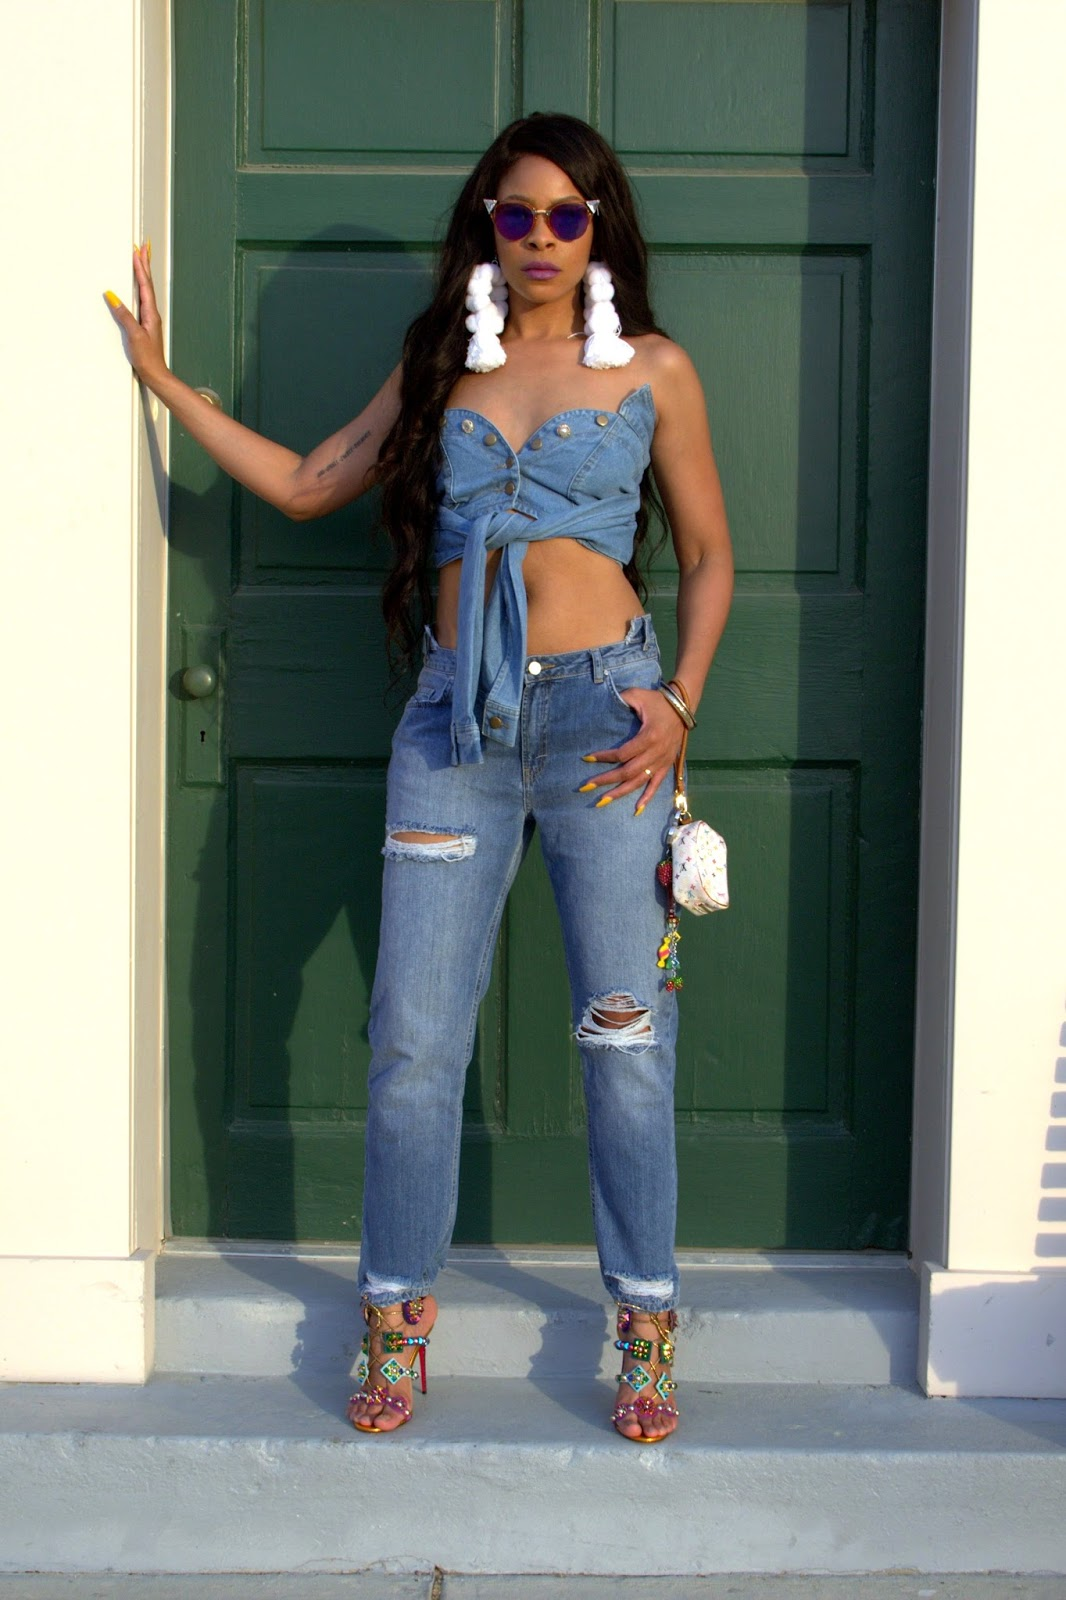 tassel earrings, kaleikita sandal, allthingsslim, shayla drake, shayla greene, denim on denim trend